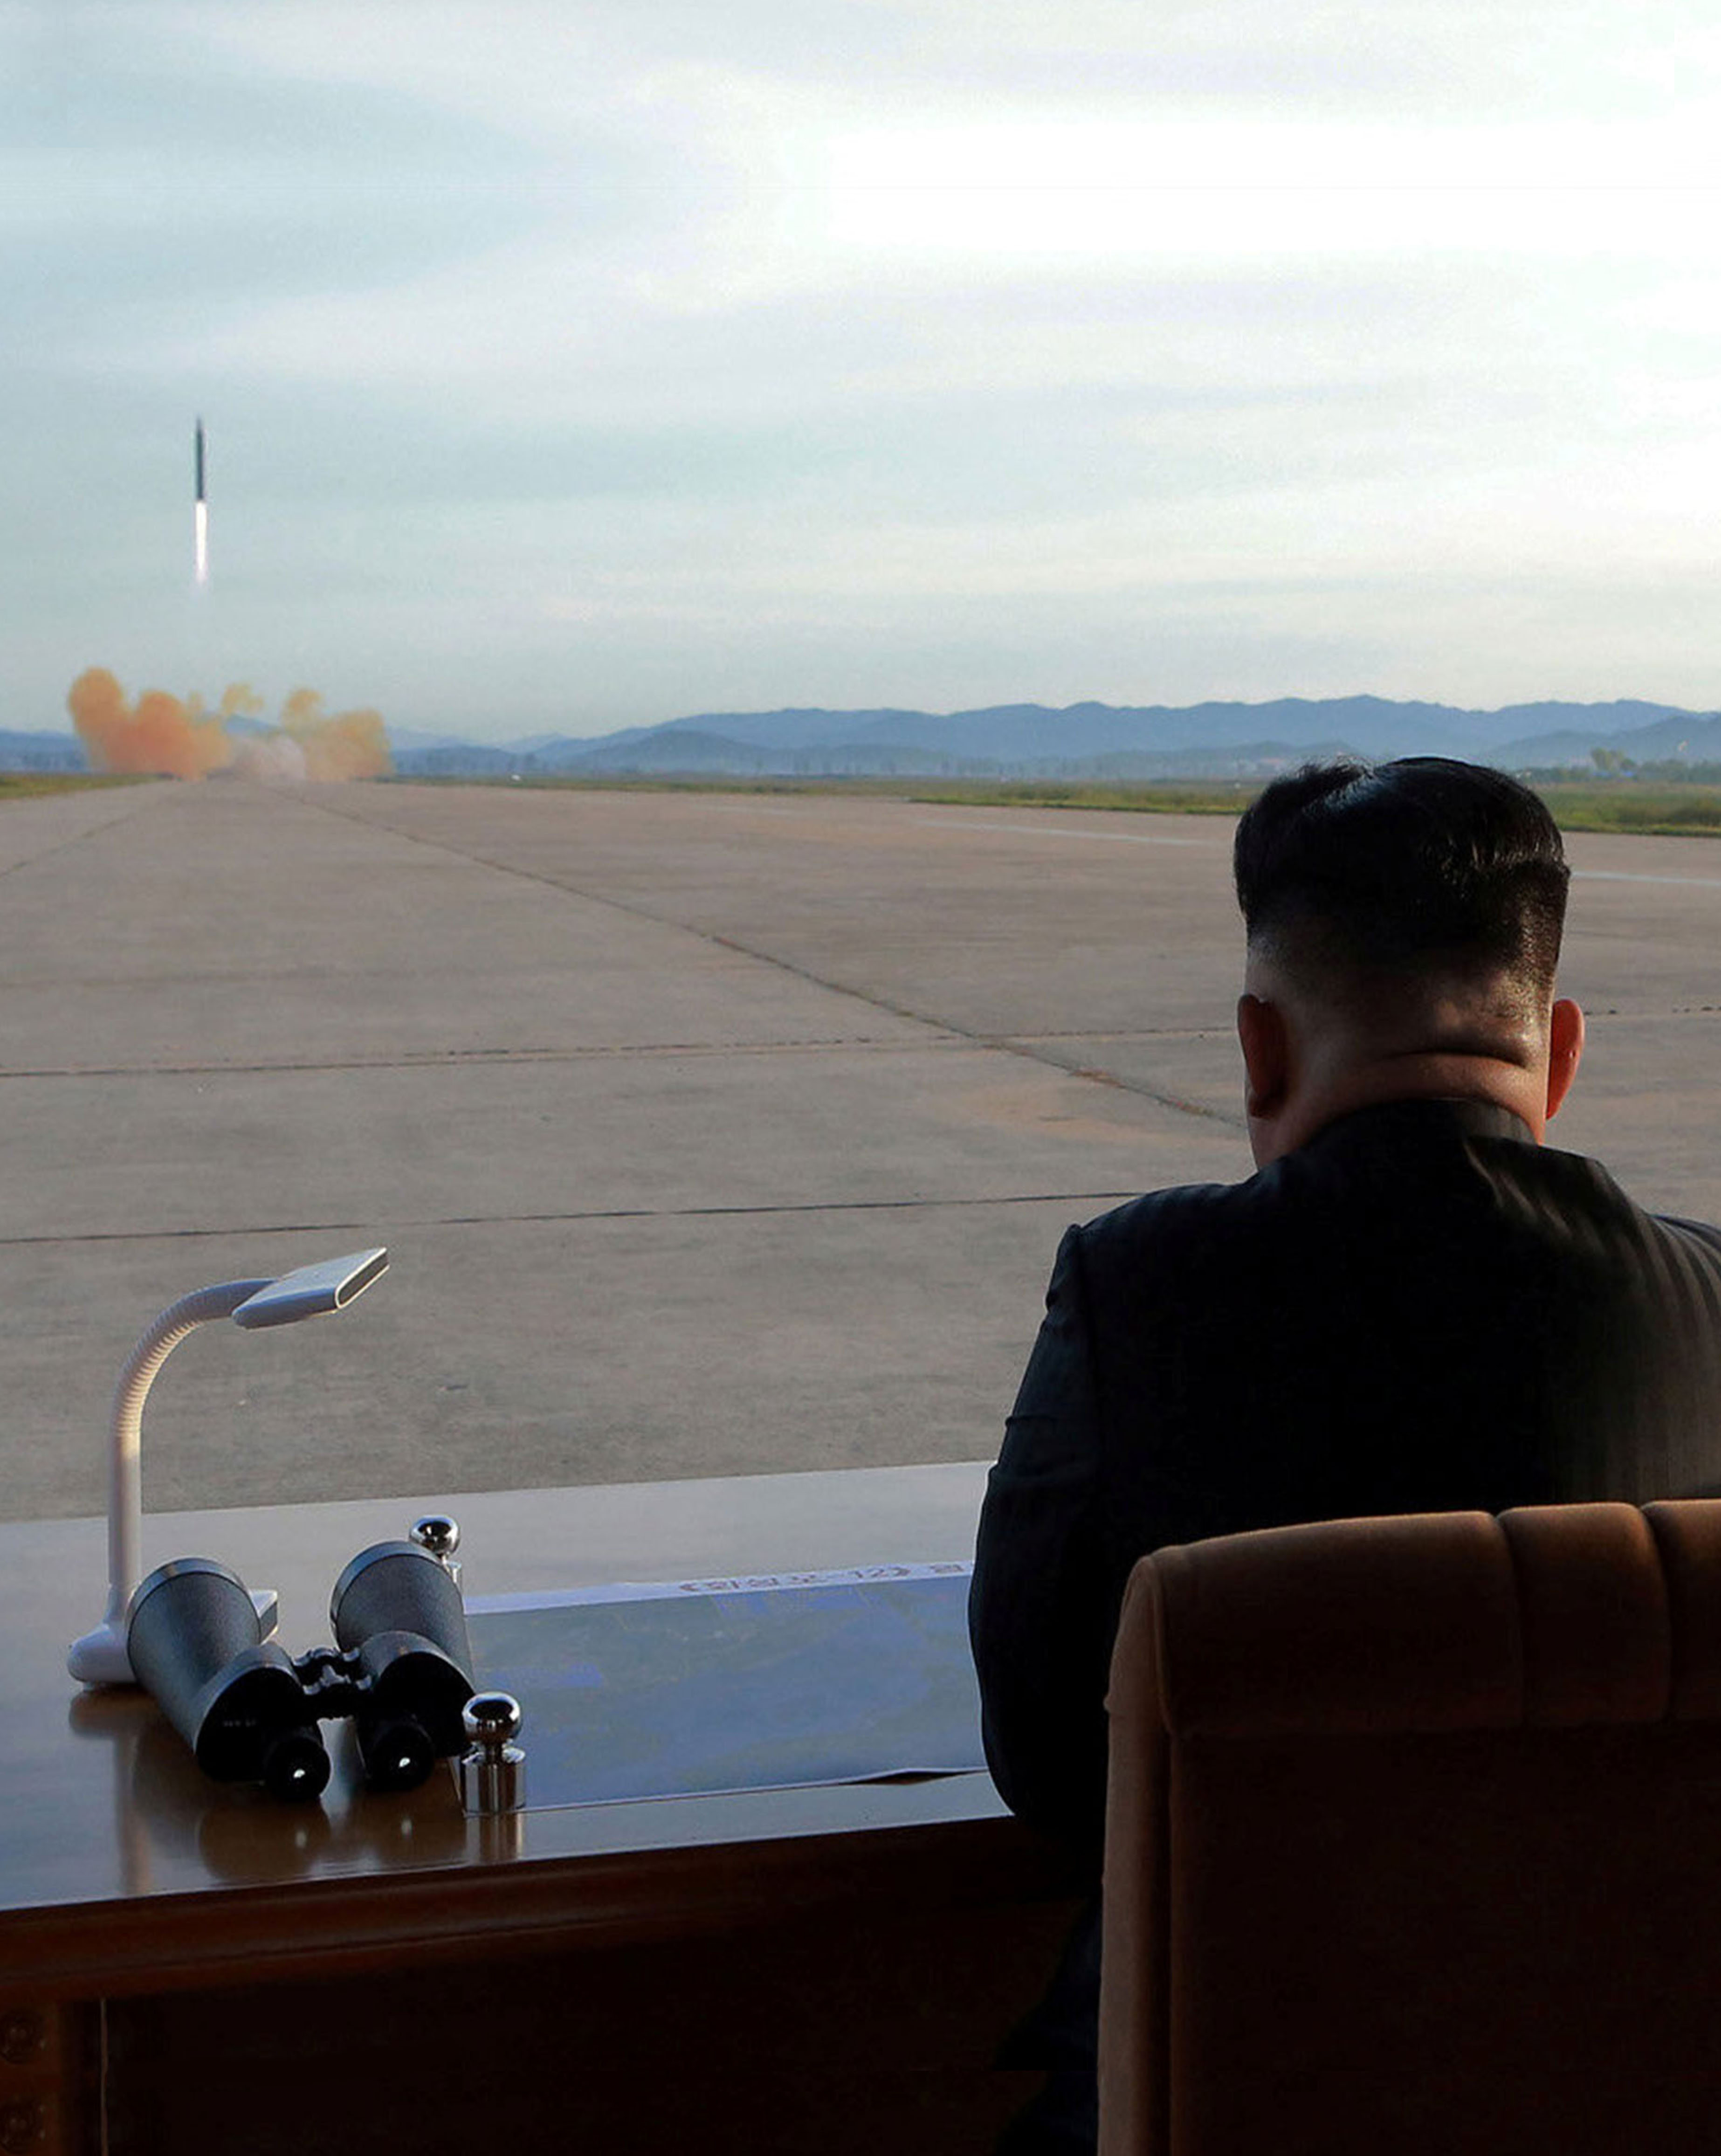 Lund Debate: How Should We Engage with North Korea?